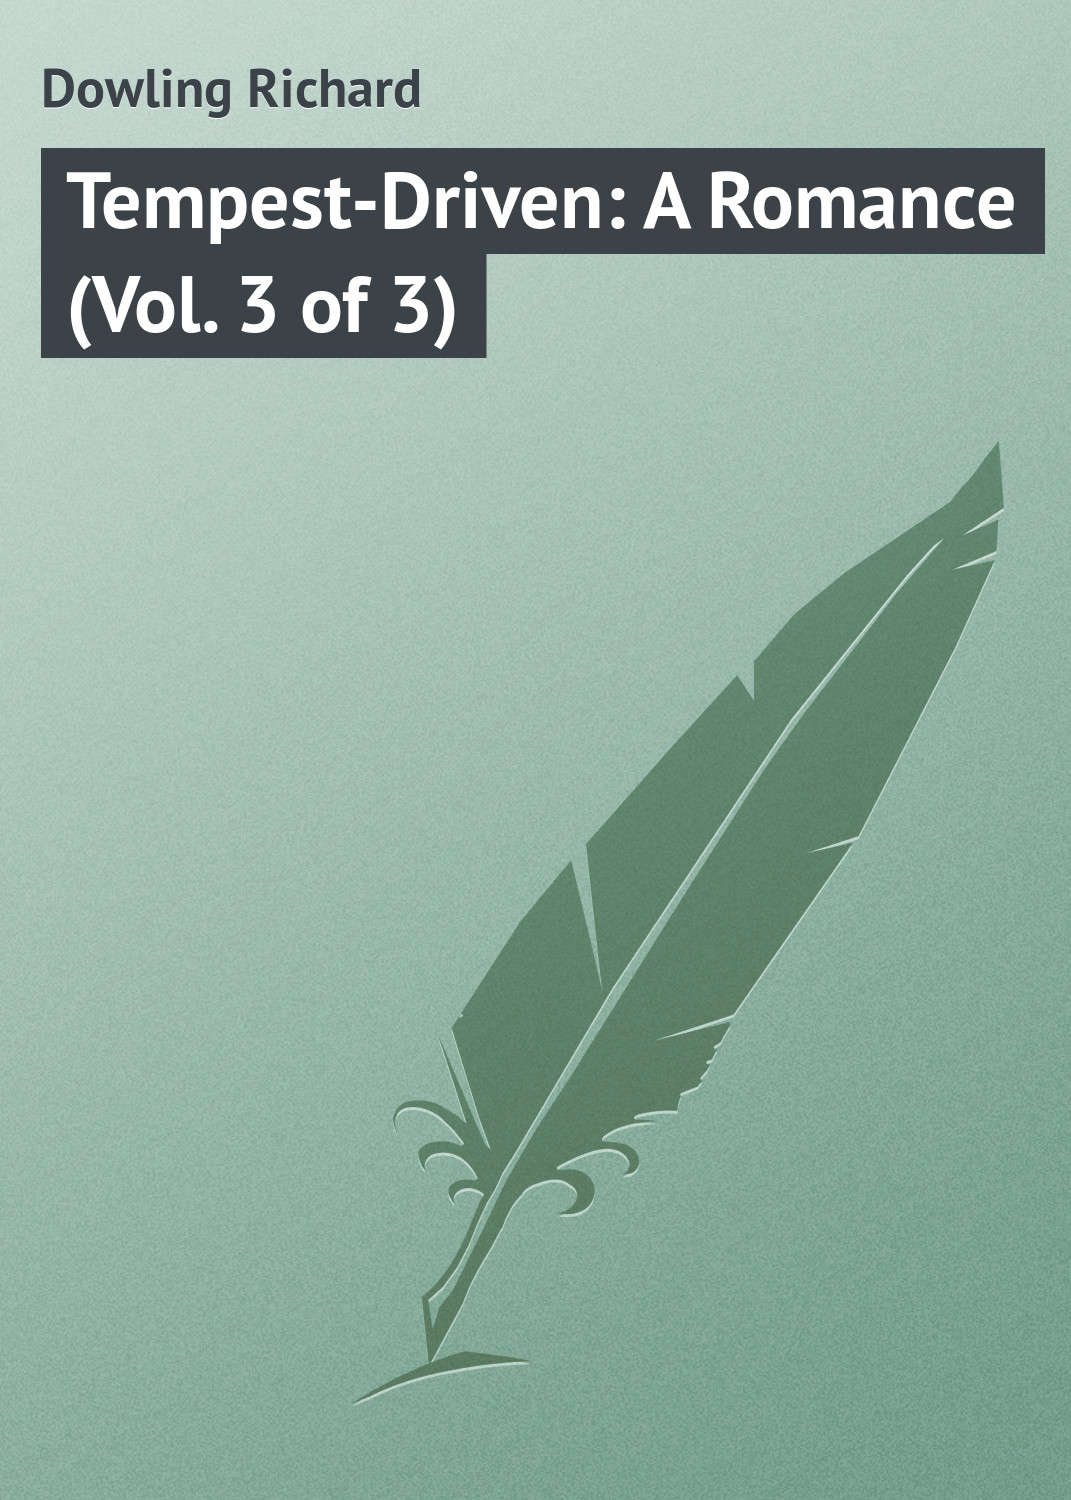 Dowling Richard Tempest-Driven: A Romance (Vol. 3 of 3) брюки спортивные gap gap ga020ewvdj97